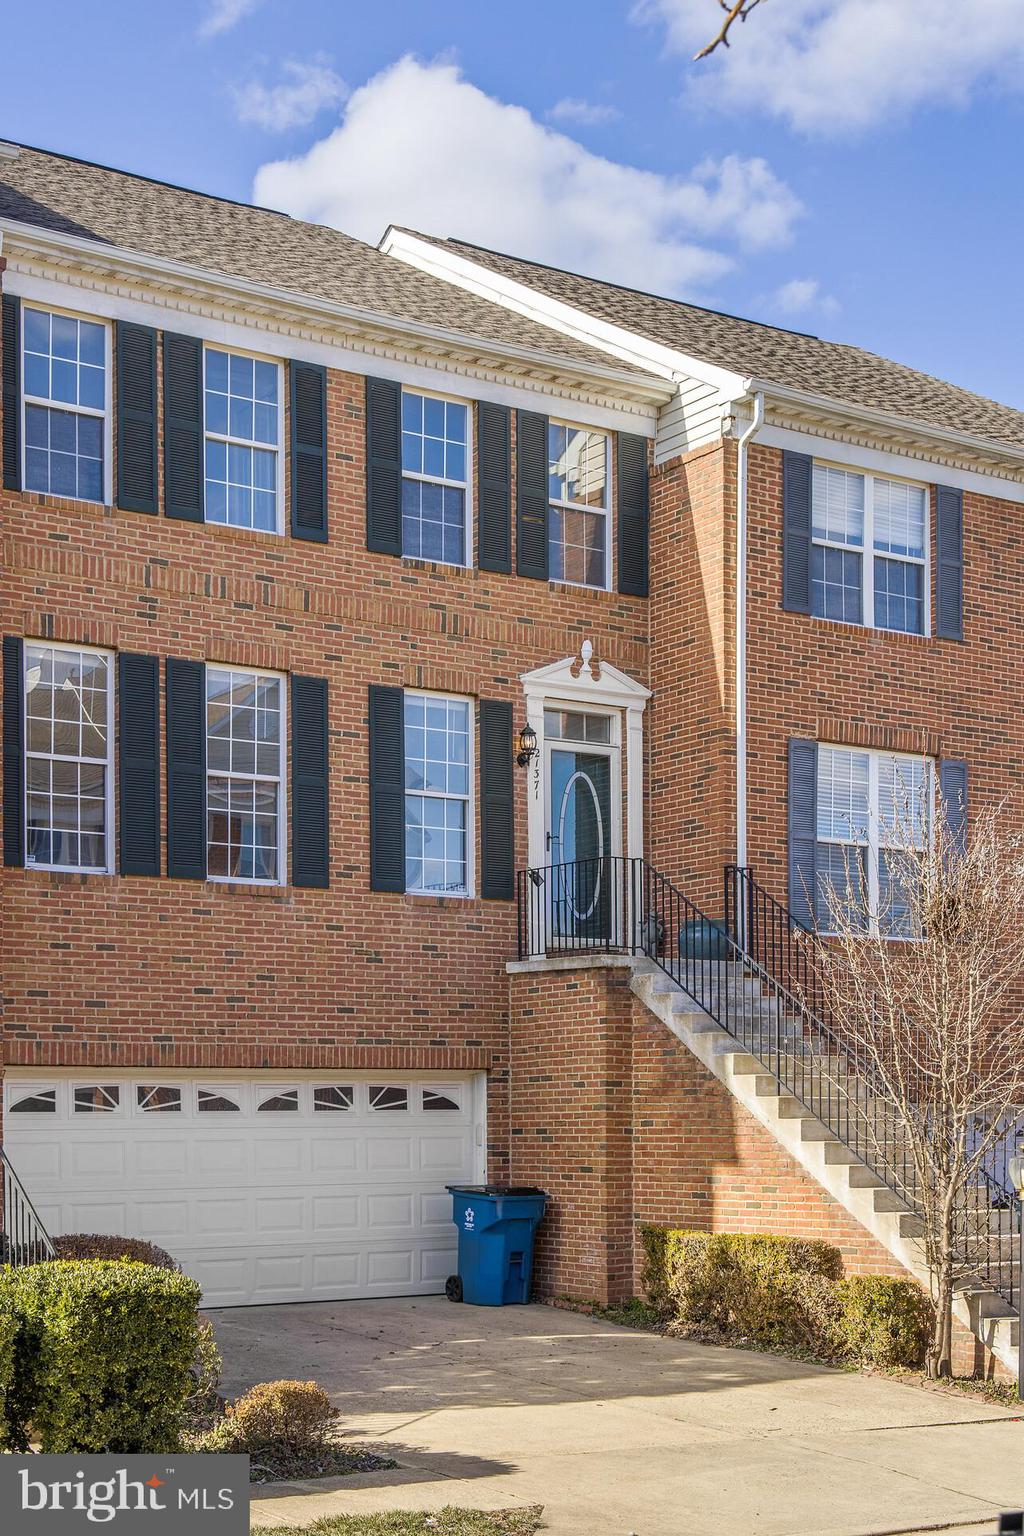 SPACIOUS  3 BEDROOM, 2.5 BATH BRICK TOWNHOME WITH VAULTED/9FT CEILINGS AND BUMP OUT ON ALL 3 LEVELS.